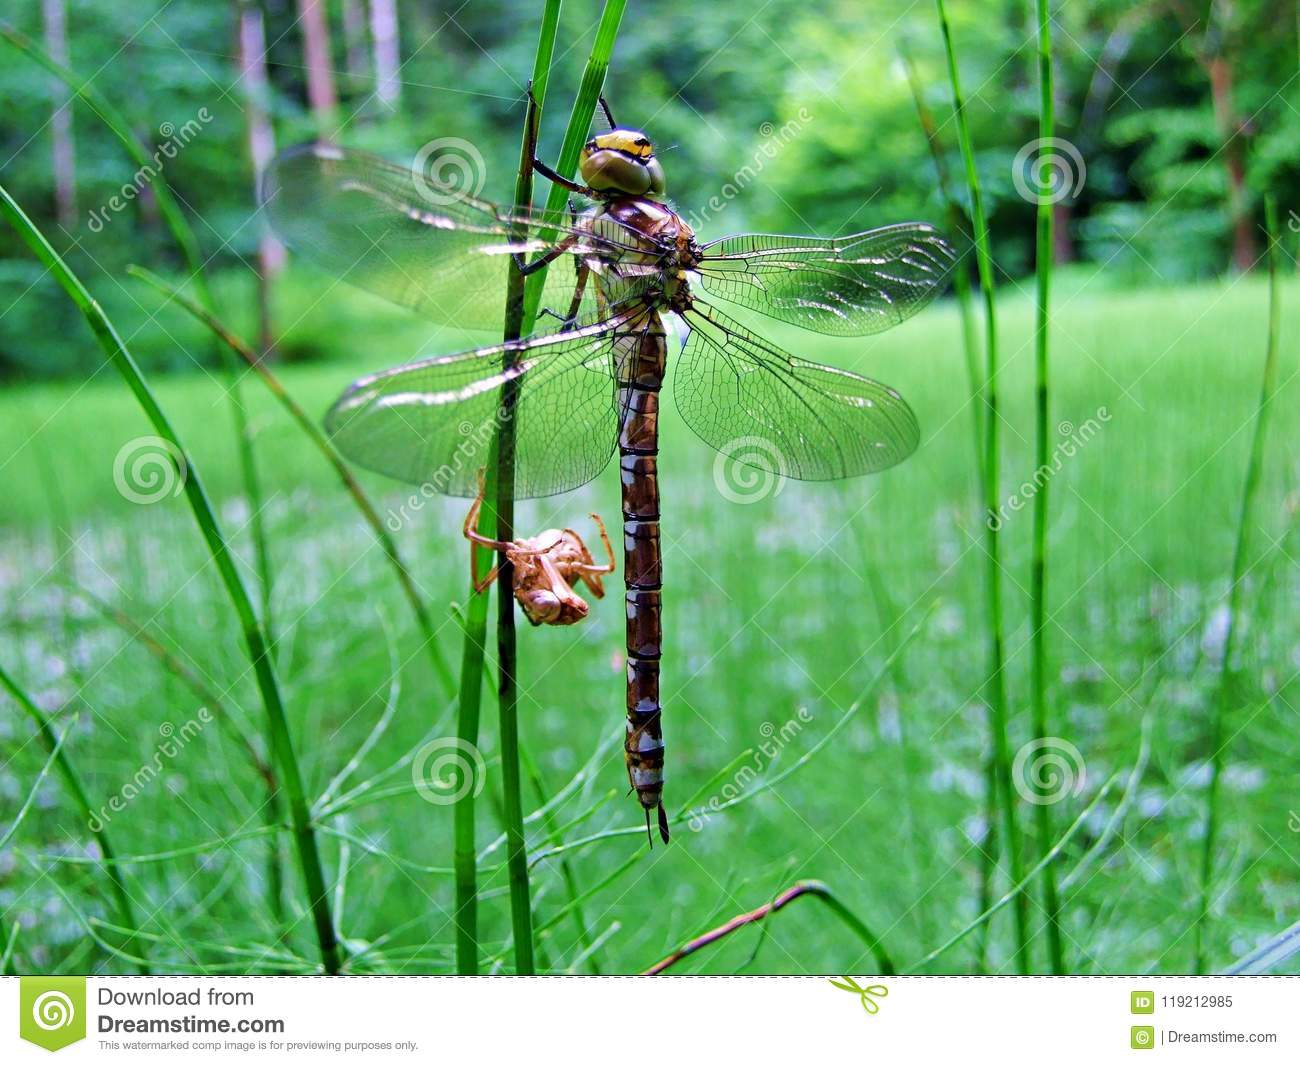 dragonfly, insect, nature, macro, wings, animal, bug, green, wildlife, fly, wing, damselfly, closeup, fauna, grass, close-up, red